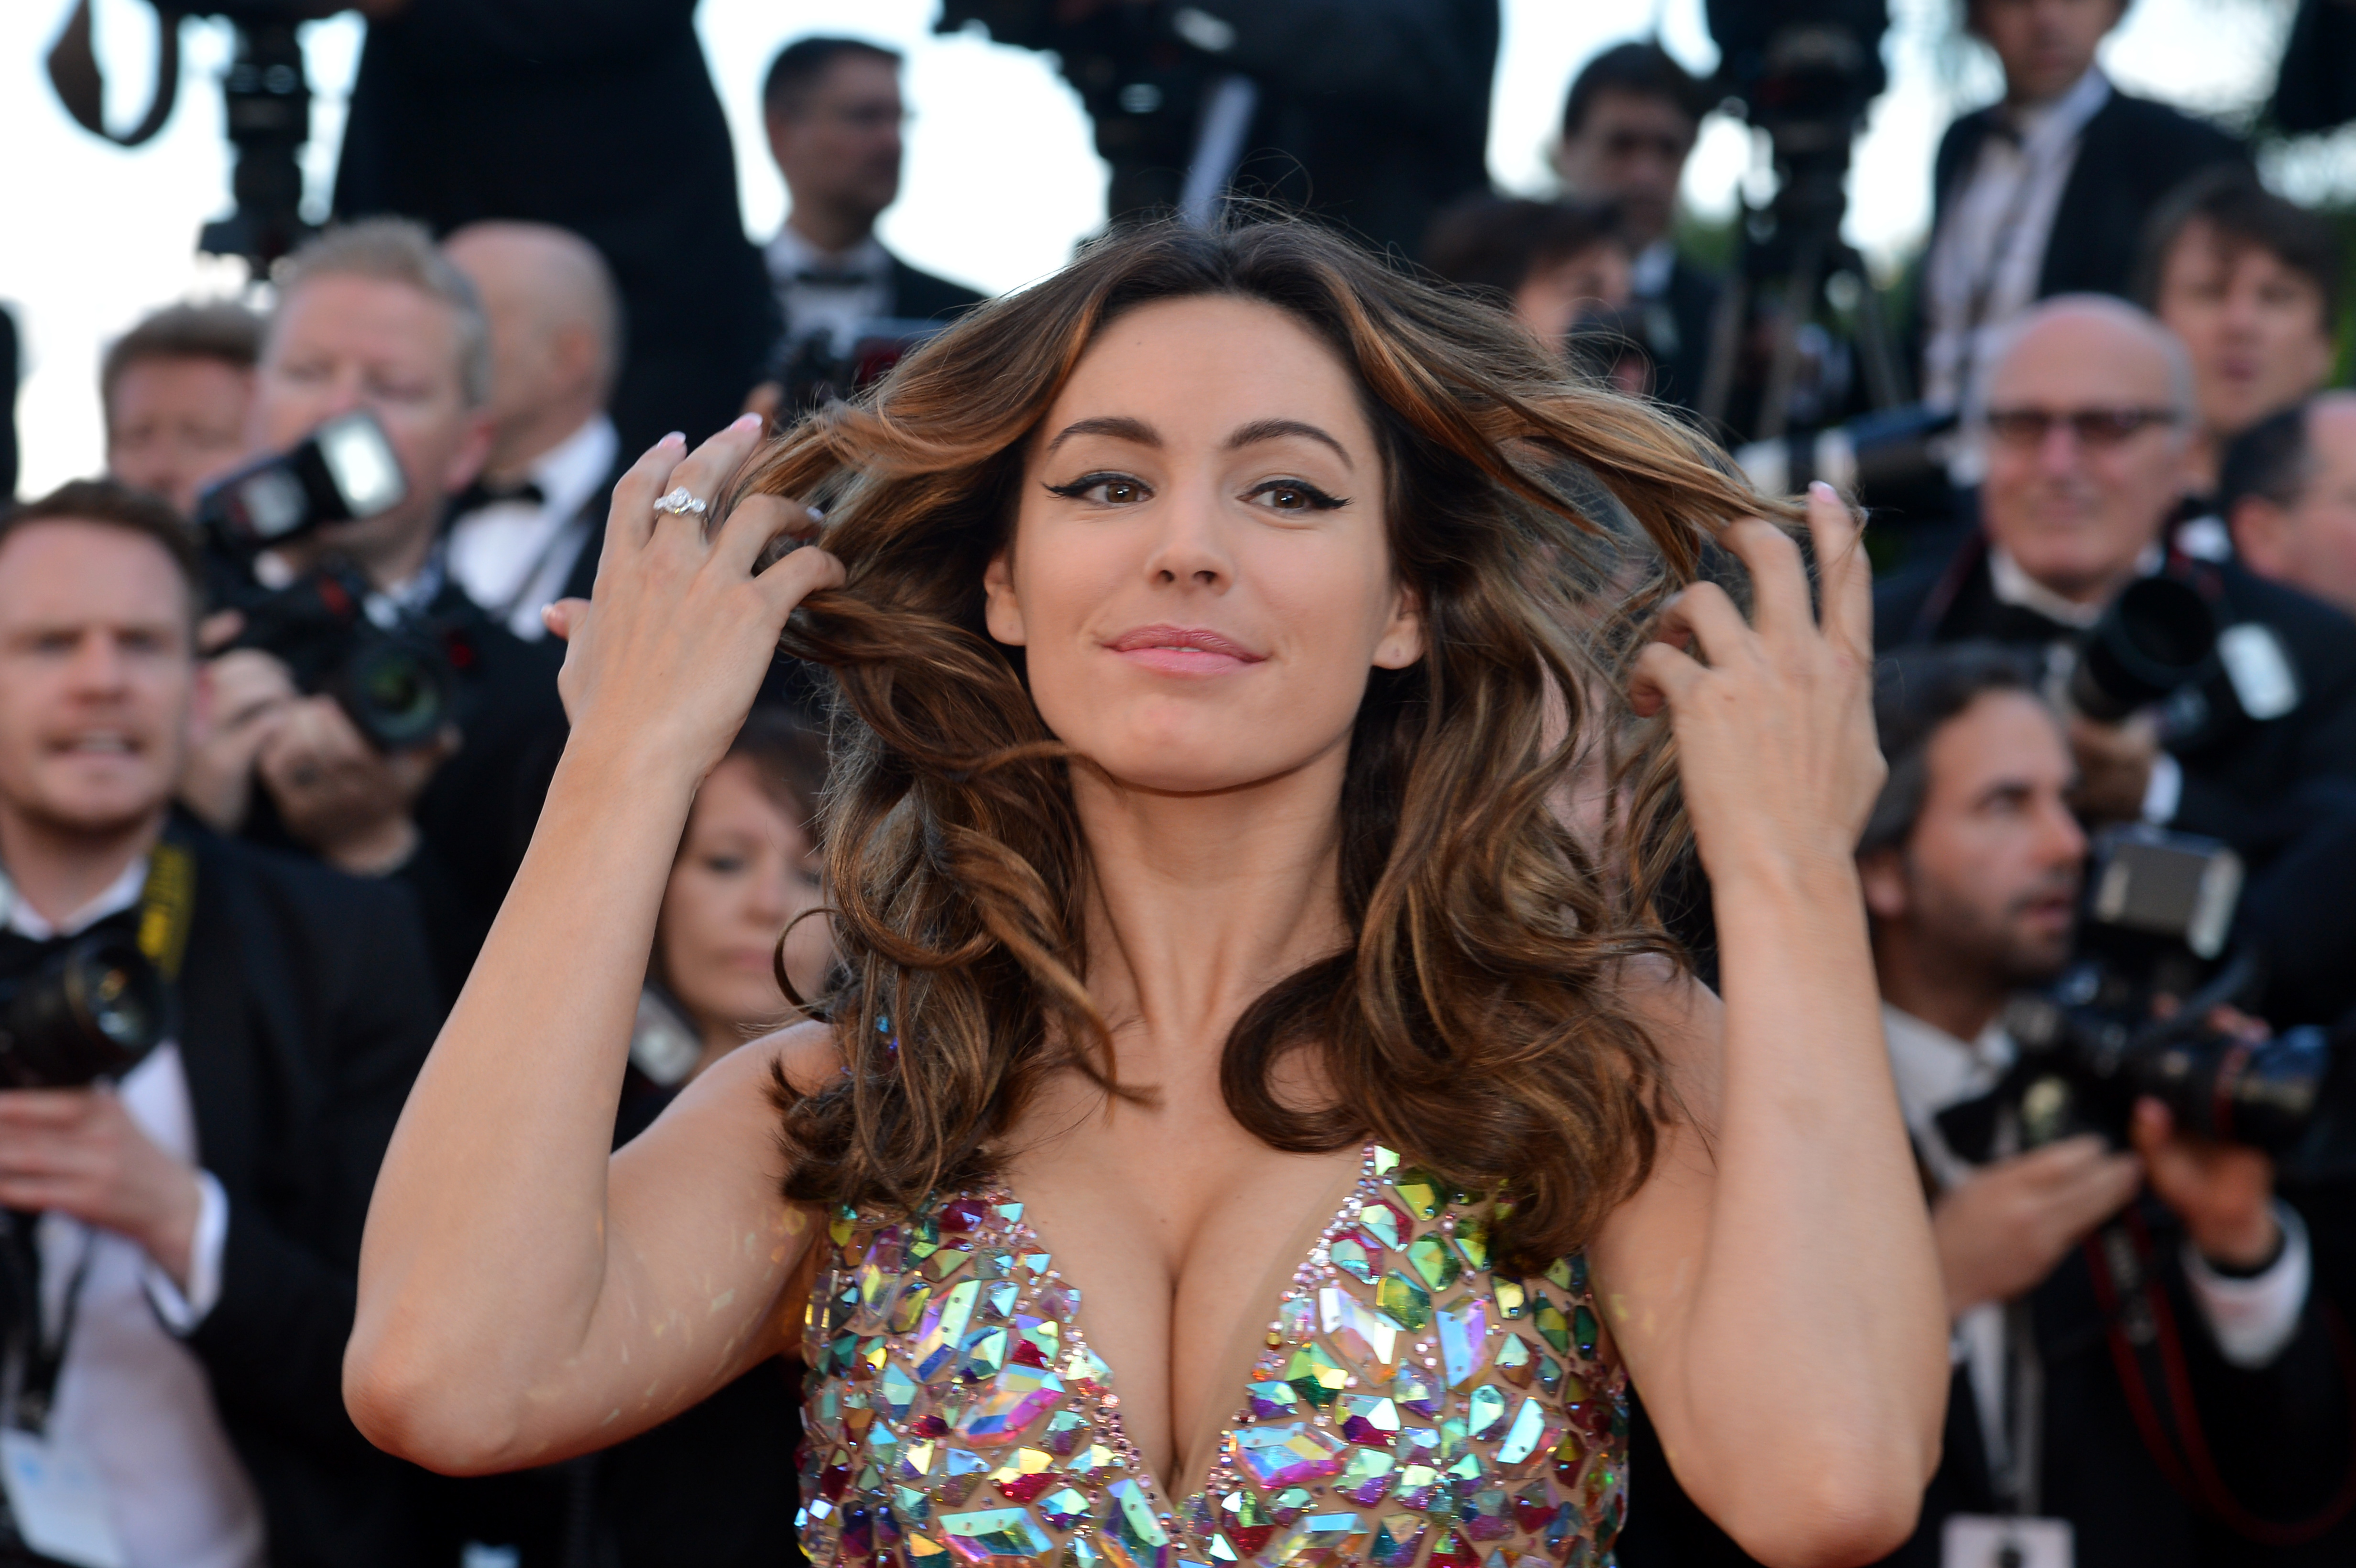 Kelly Brook's disastrous TV career continues with fresh bad luck